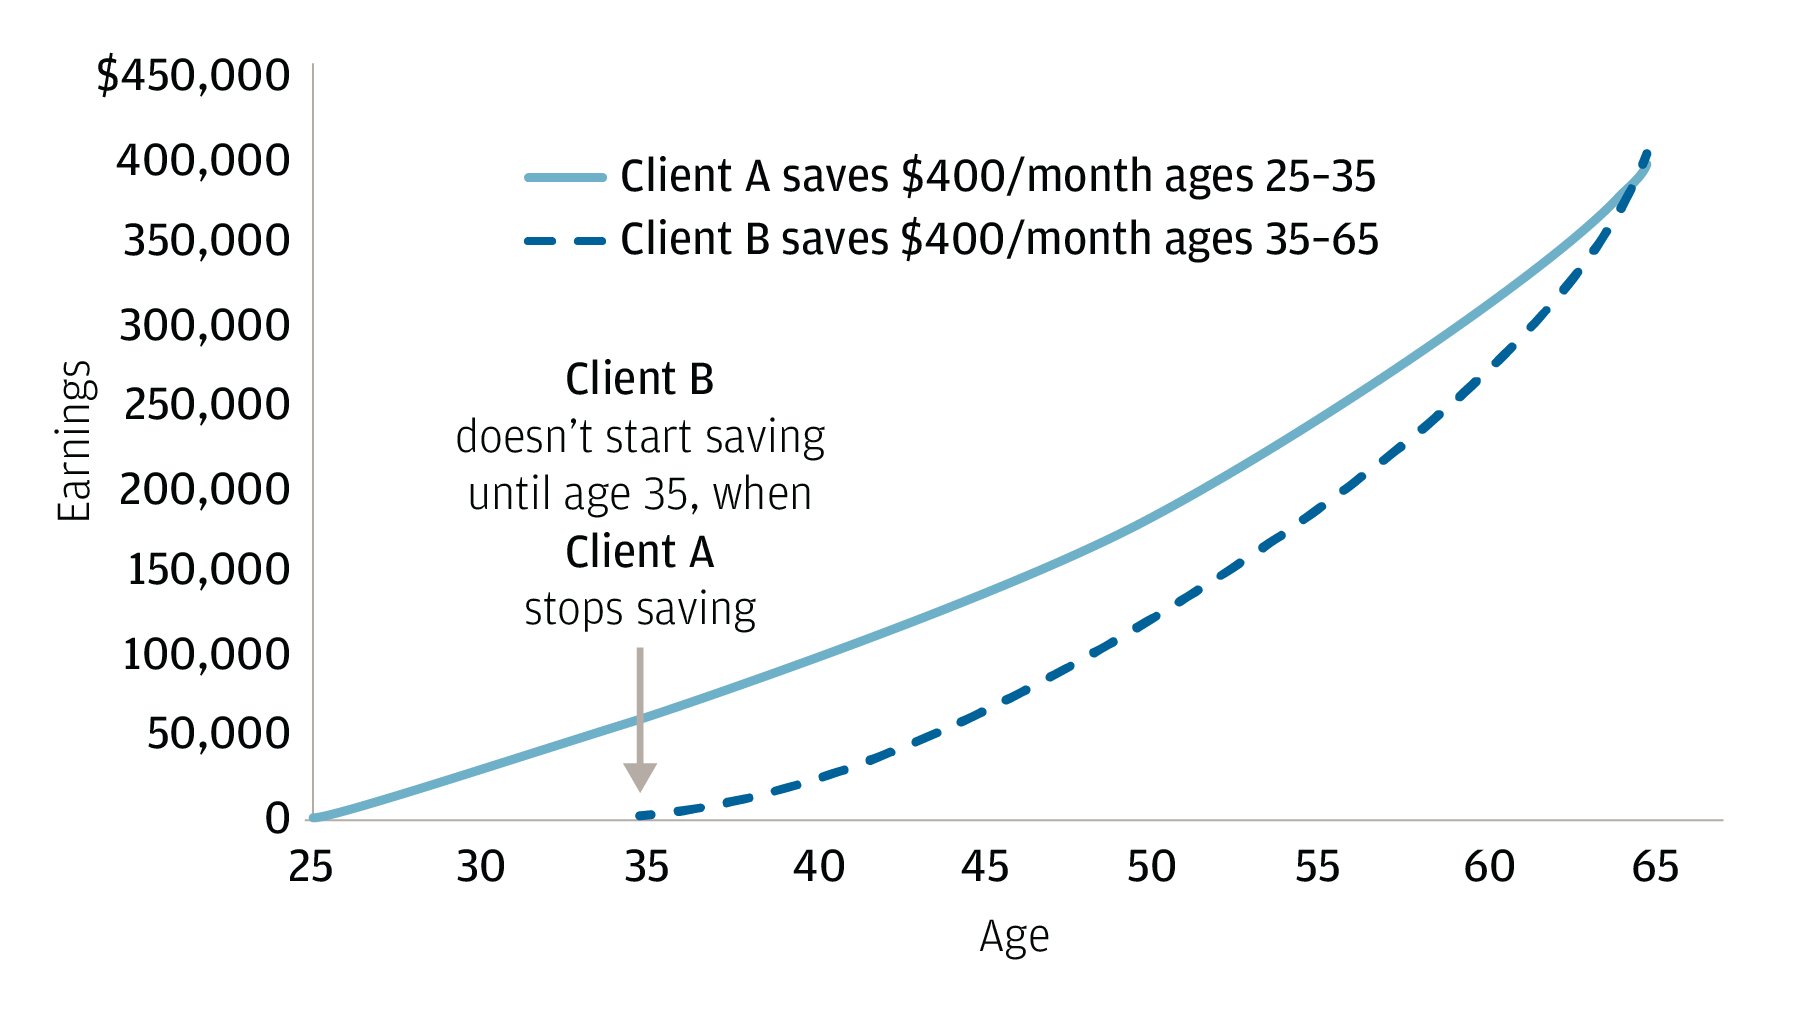 The line graph shows the trajectory of two savers over a 40-year period.